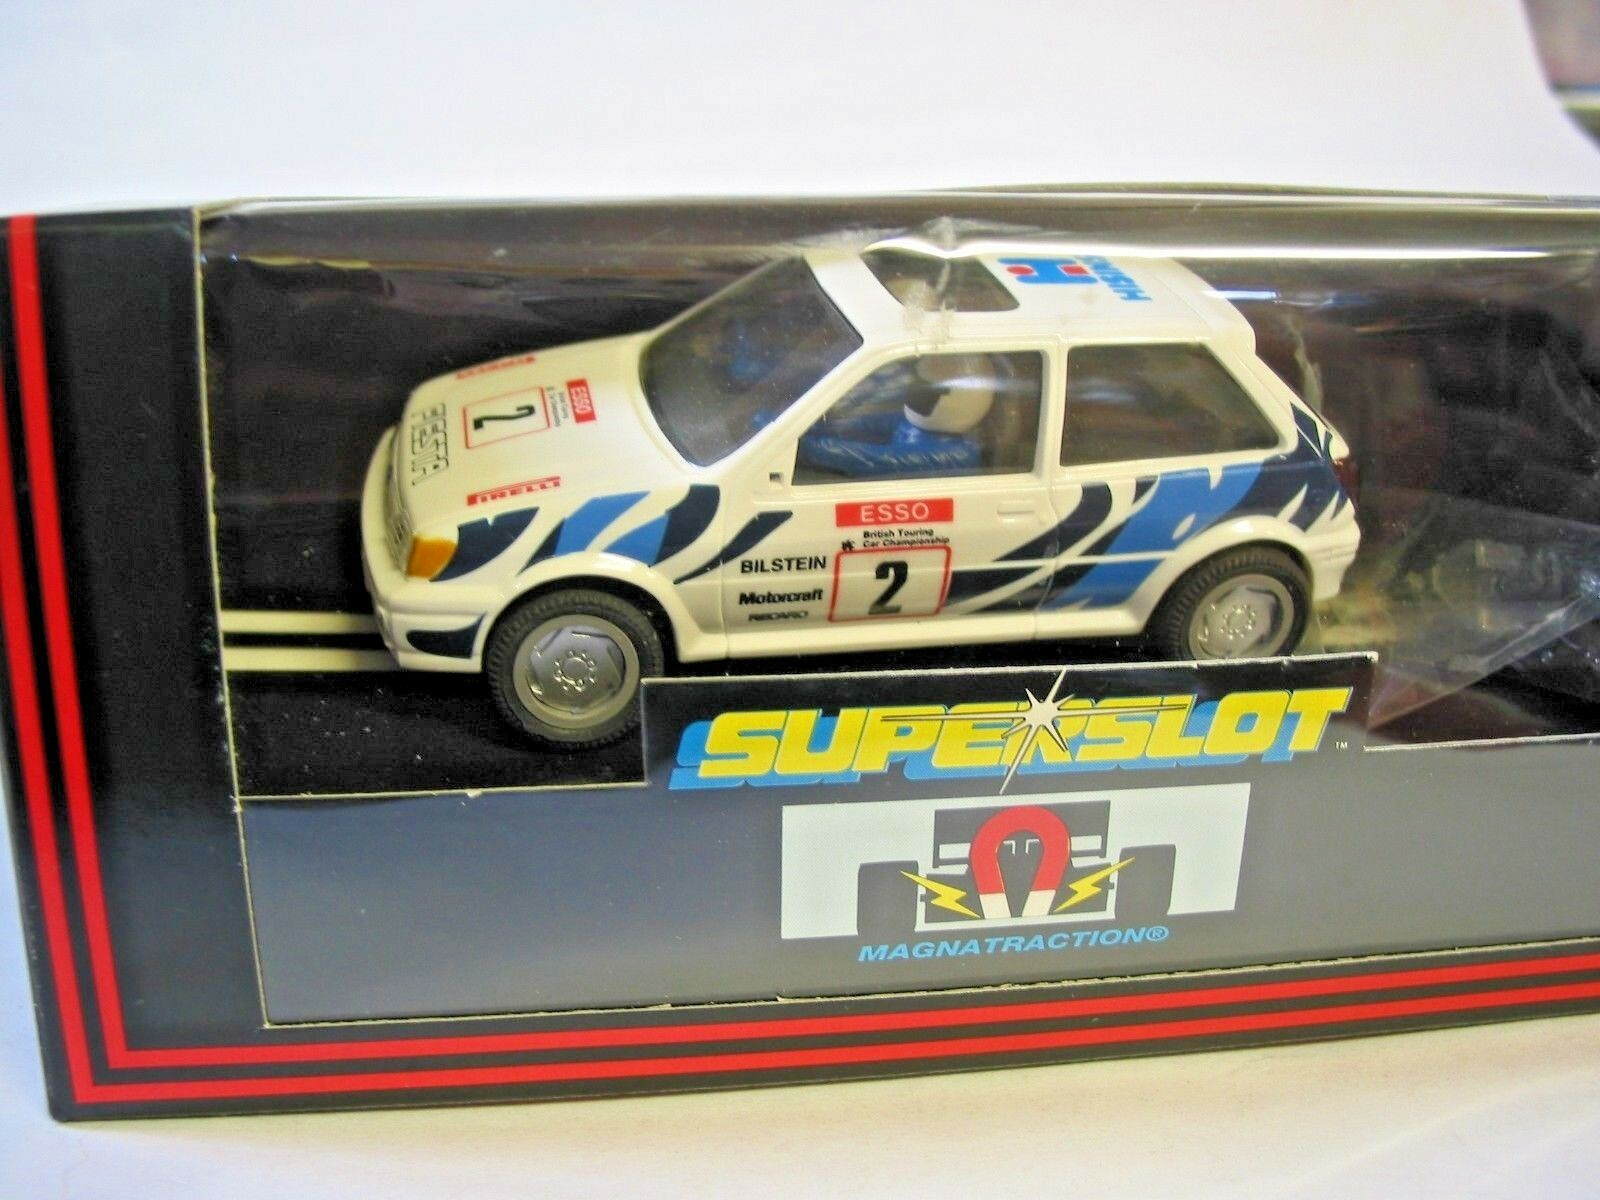 Scalextric Collectors C314 FIESTA XR2i hisina 370 500 Comme neuf boxed Crisp Box